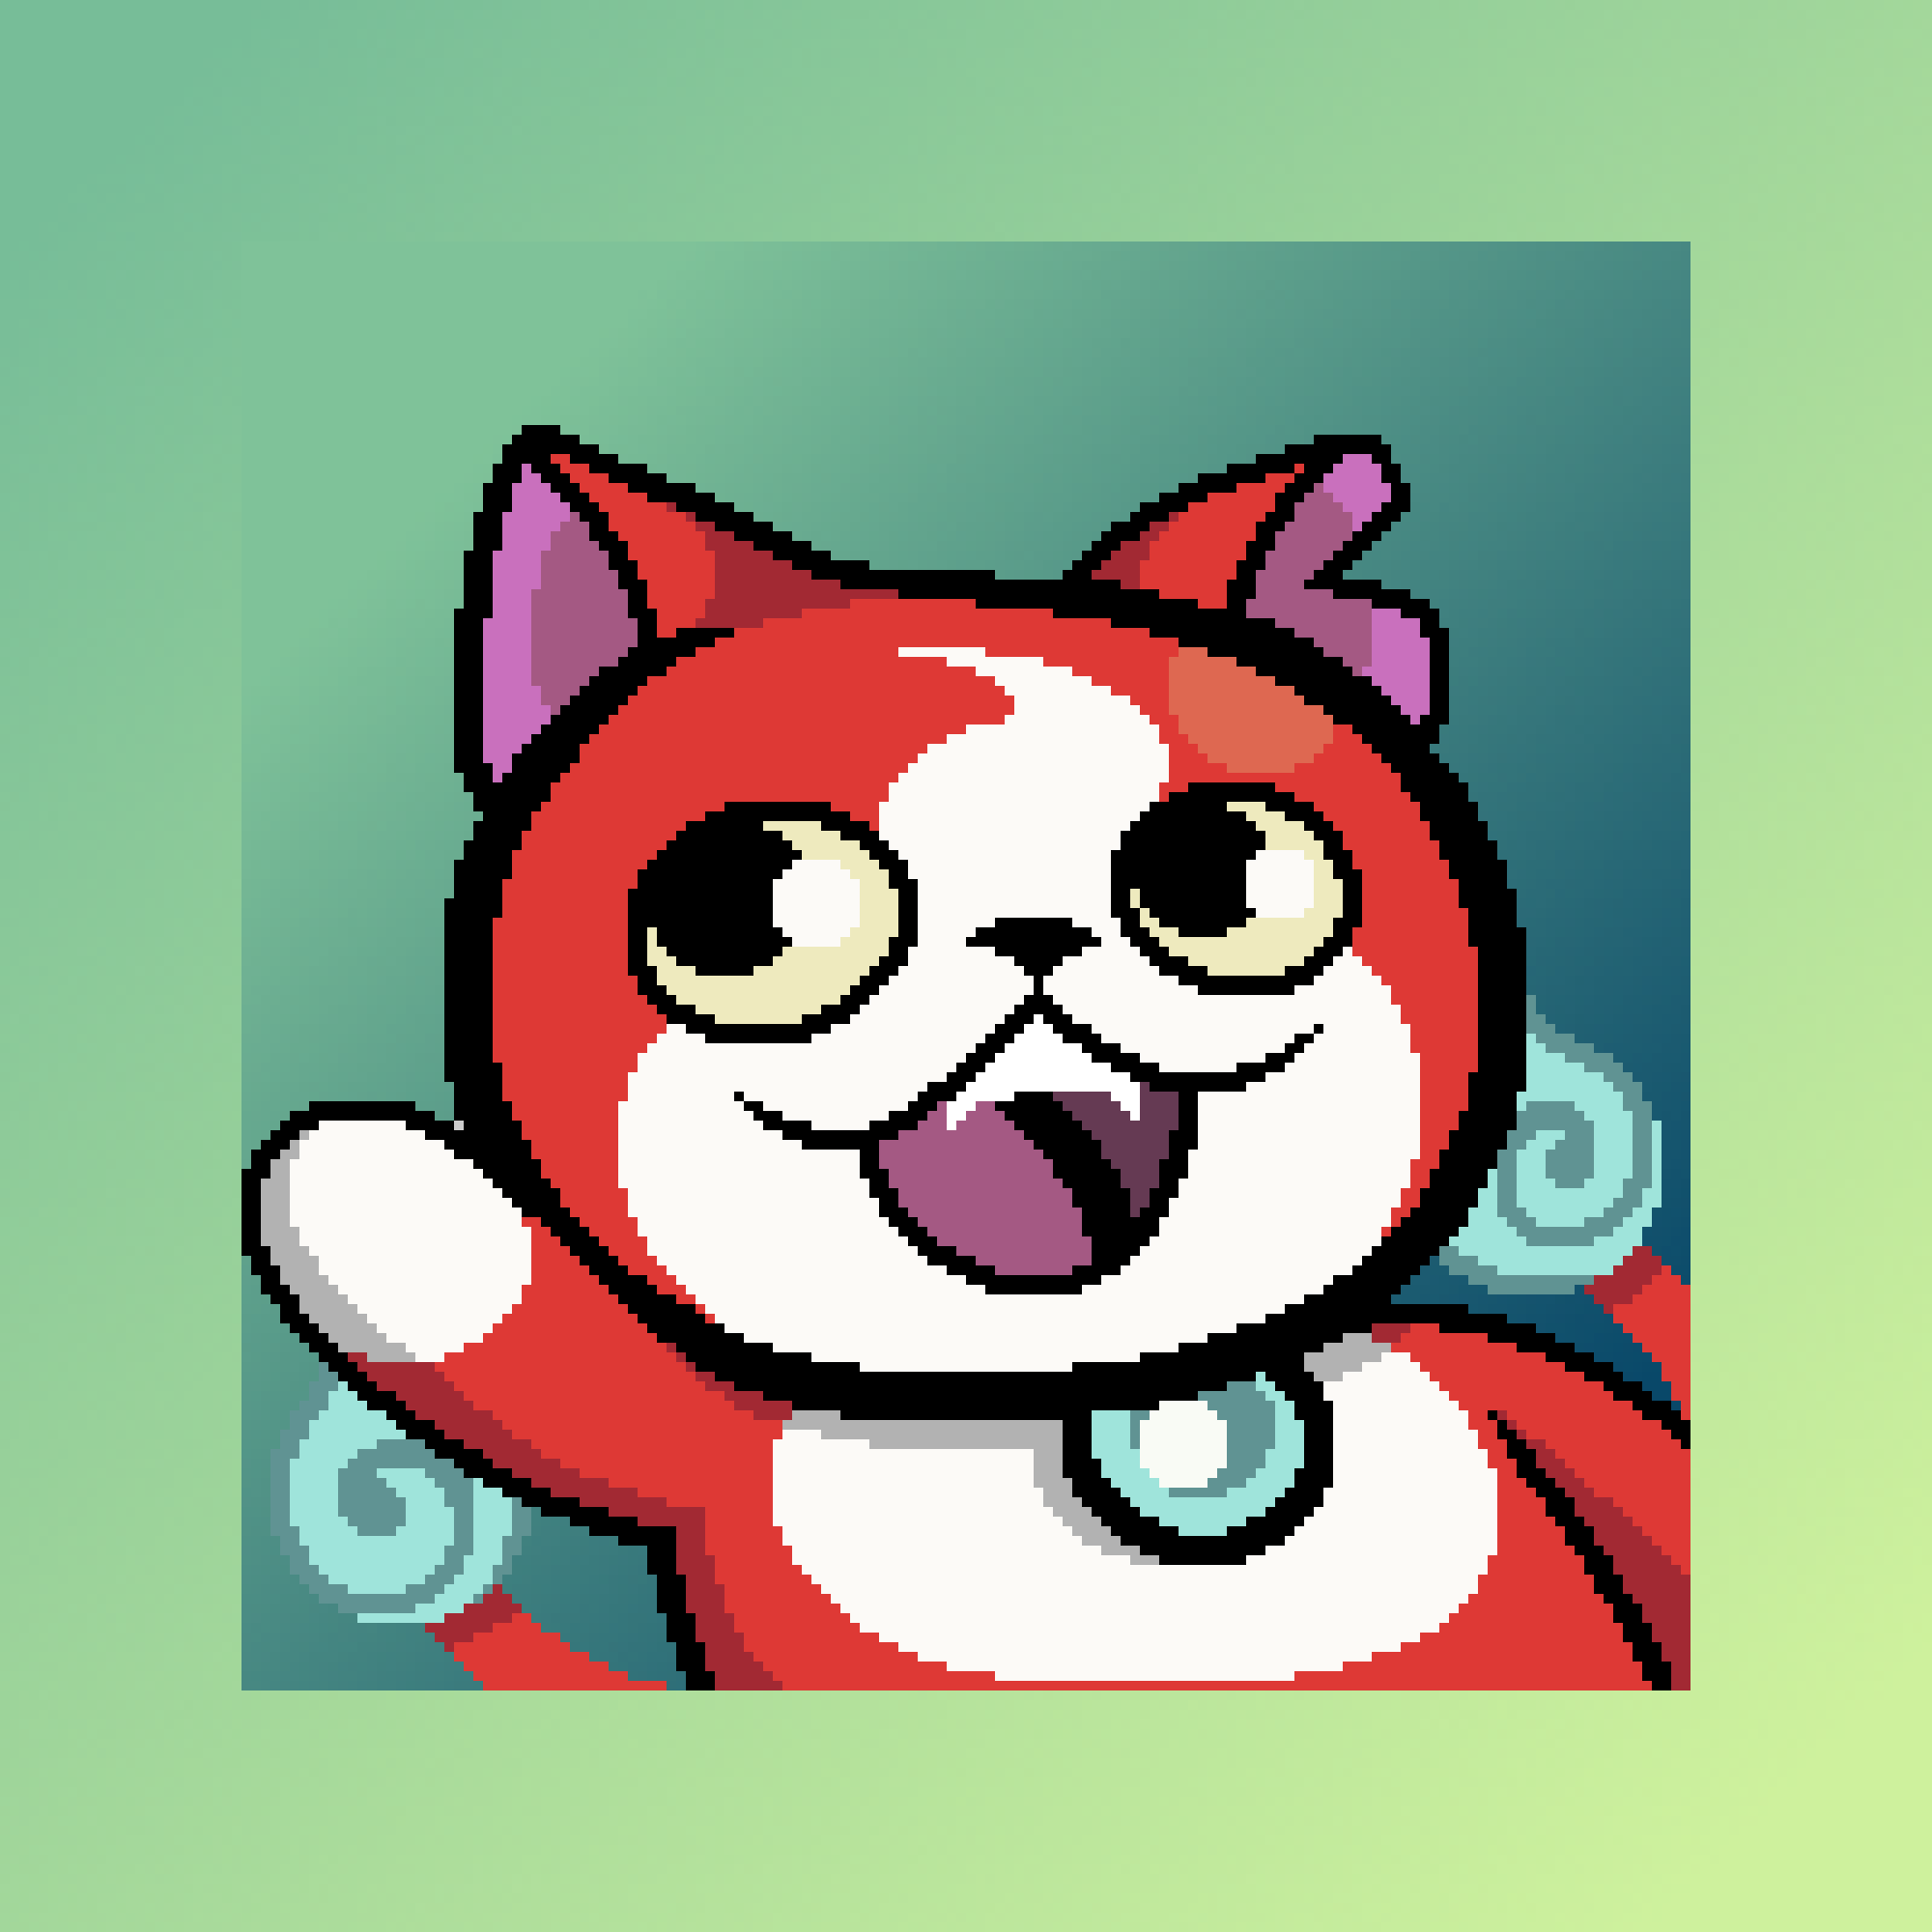 Nya, it's Jibanyan!